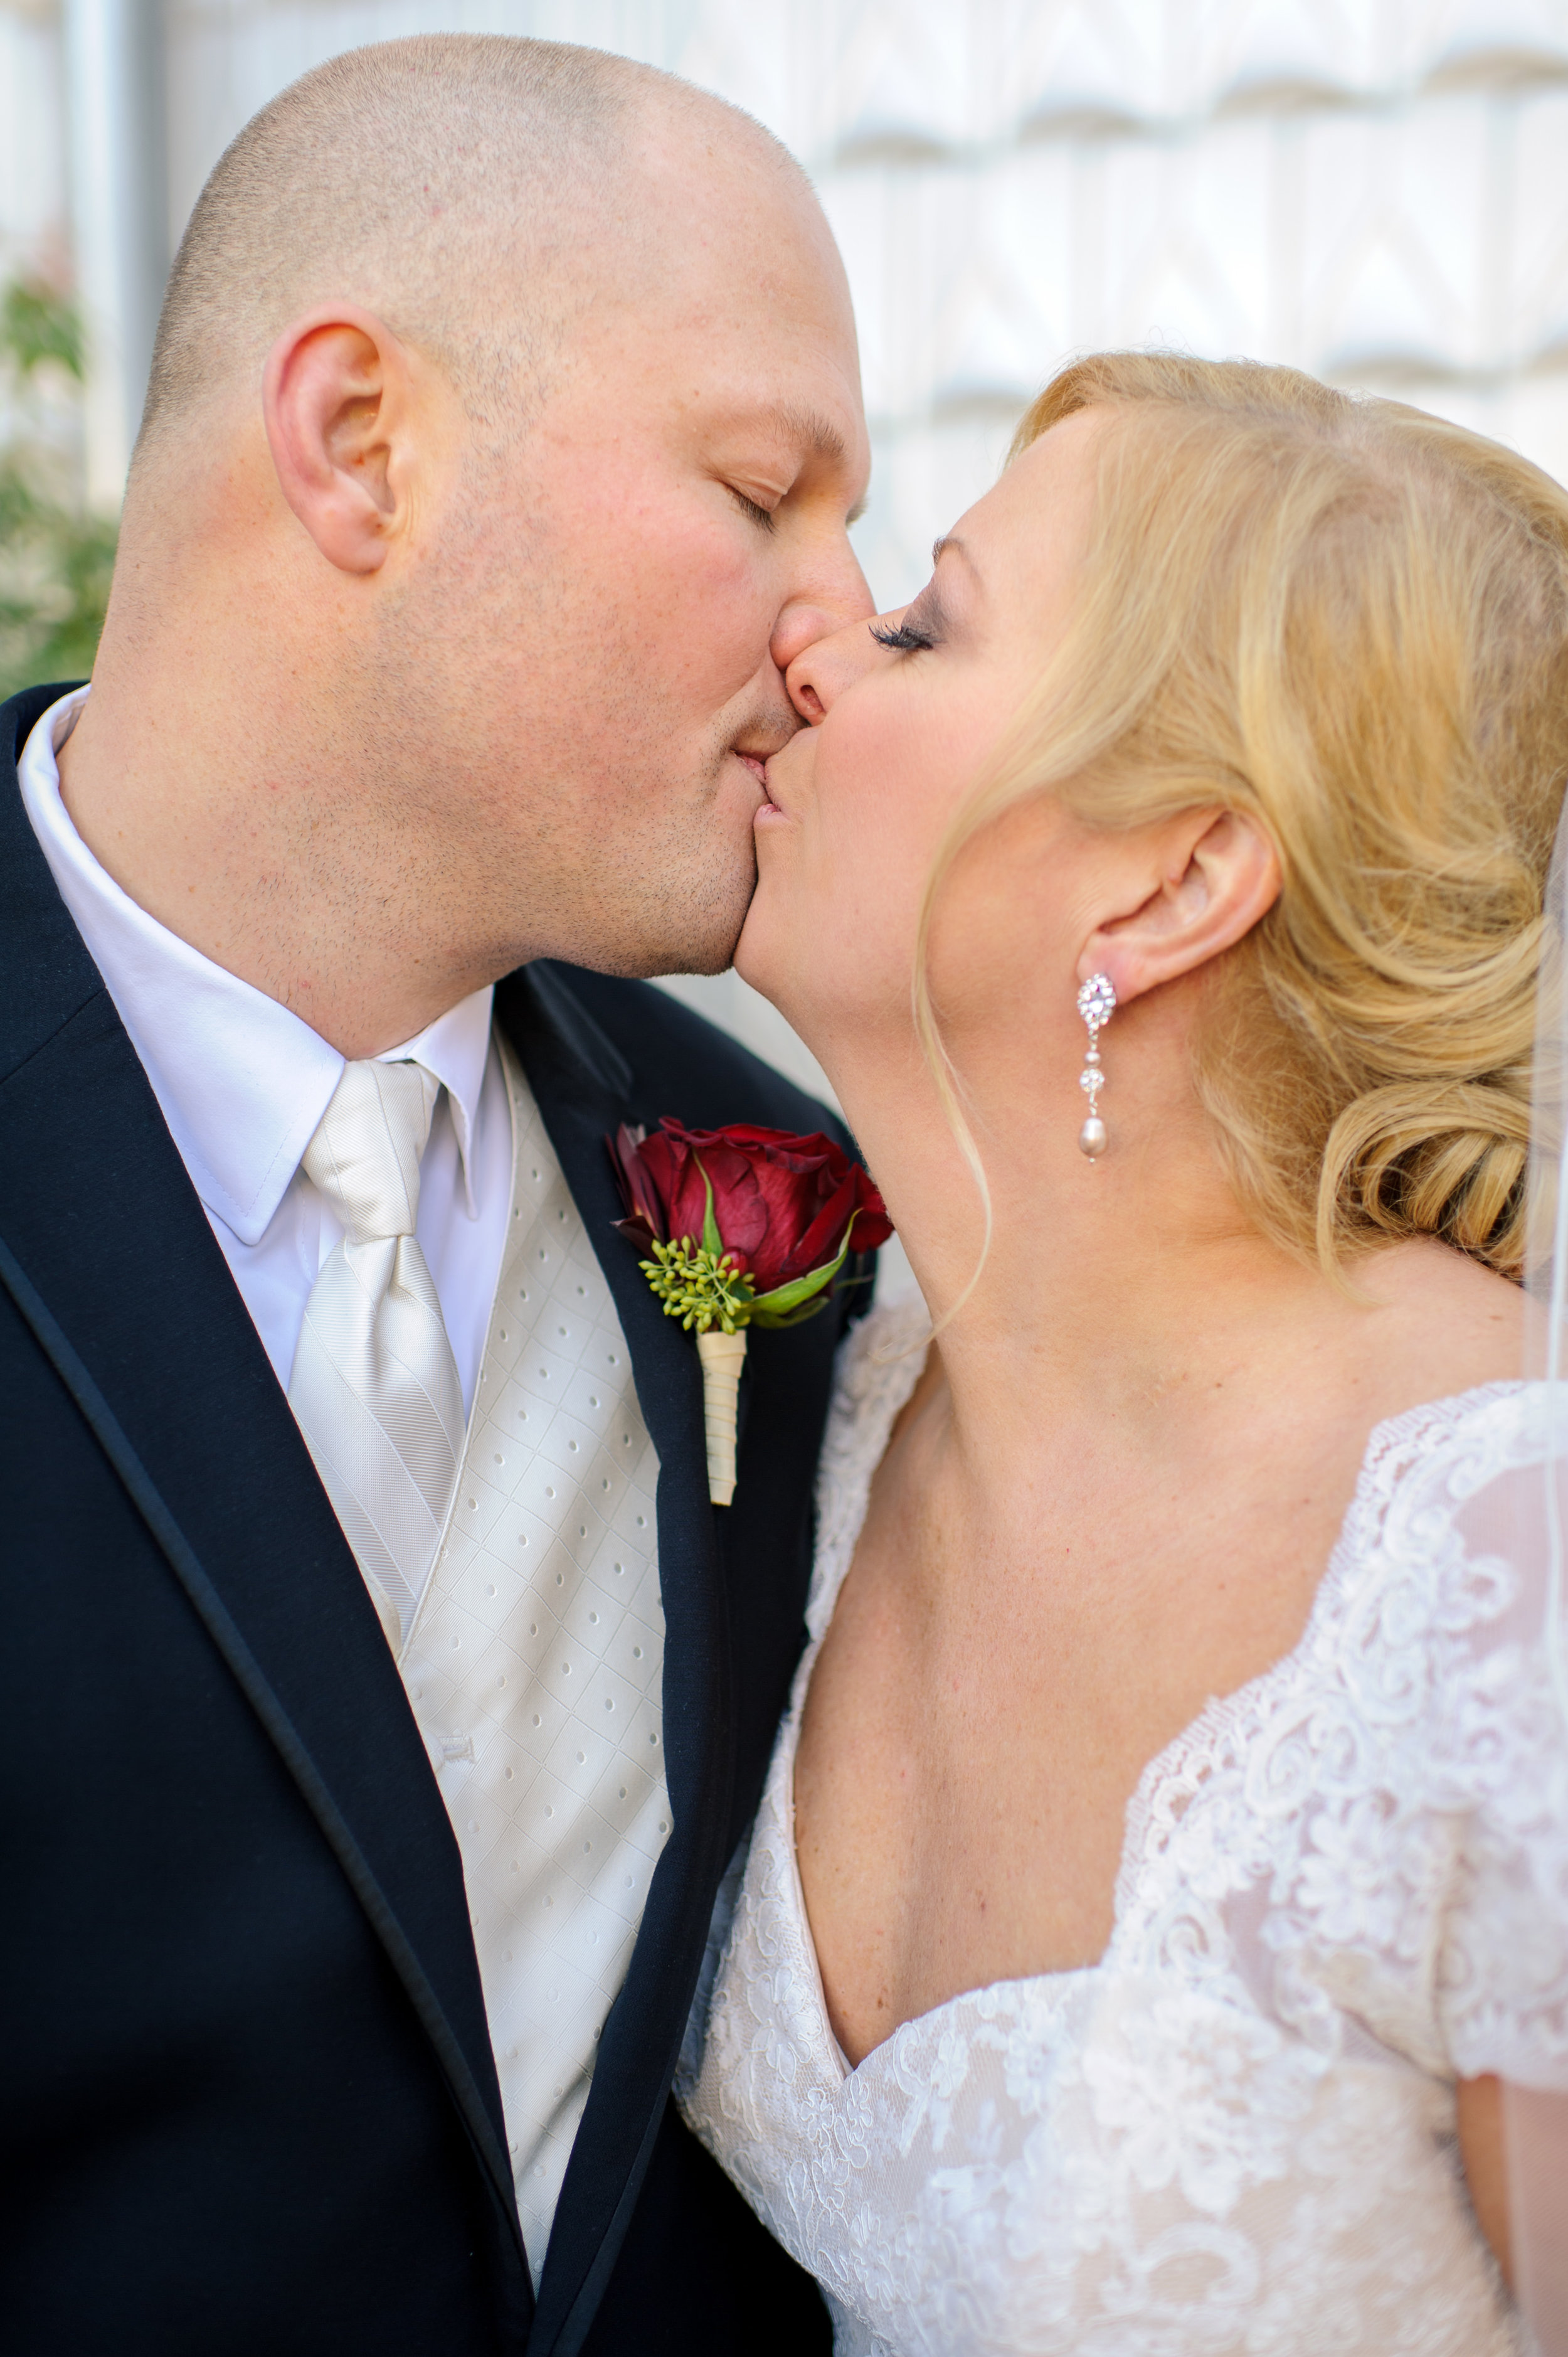 Christine and Karl Romantic Outdoors Bridal Bride and Groom Portrait Kiss at the Edgewater Hotel Waterfront in Seattle Washington